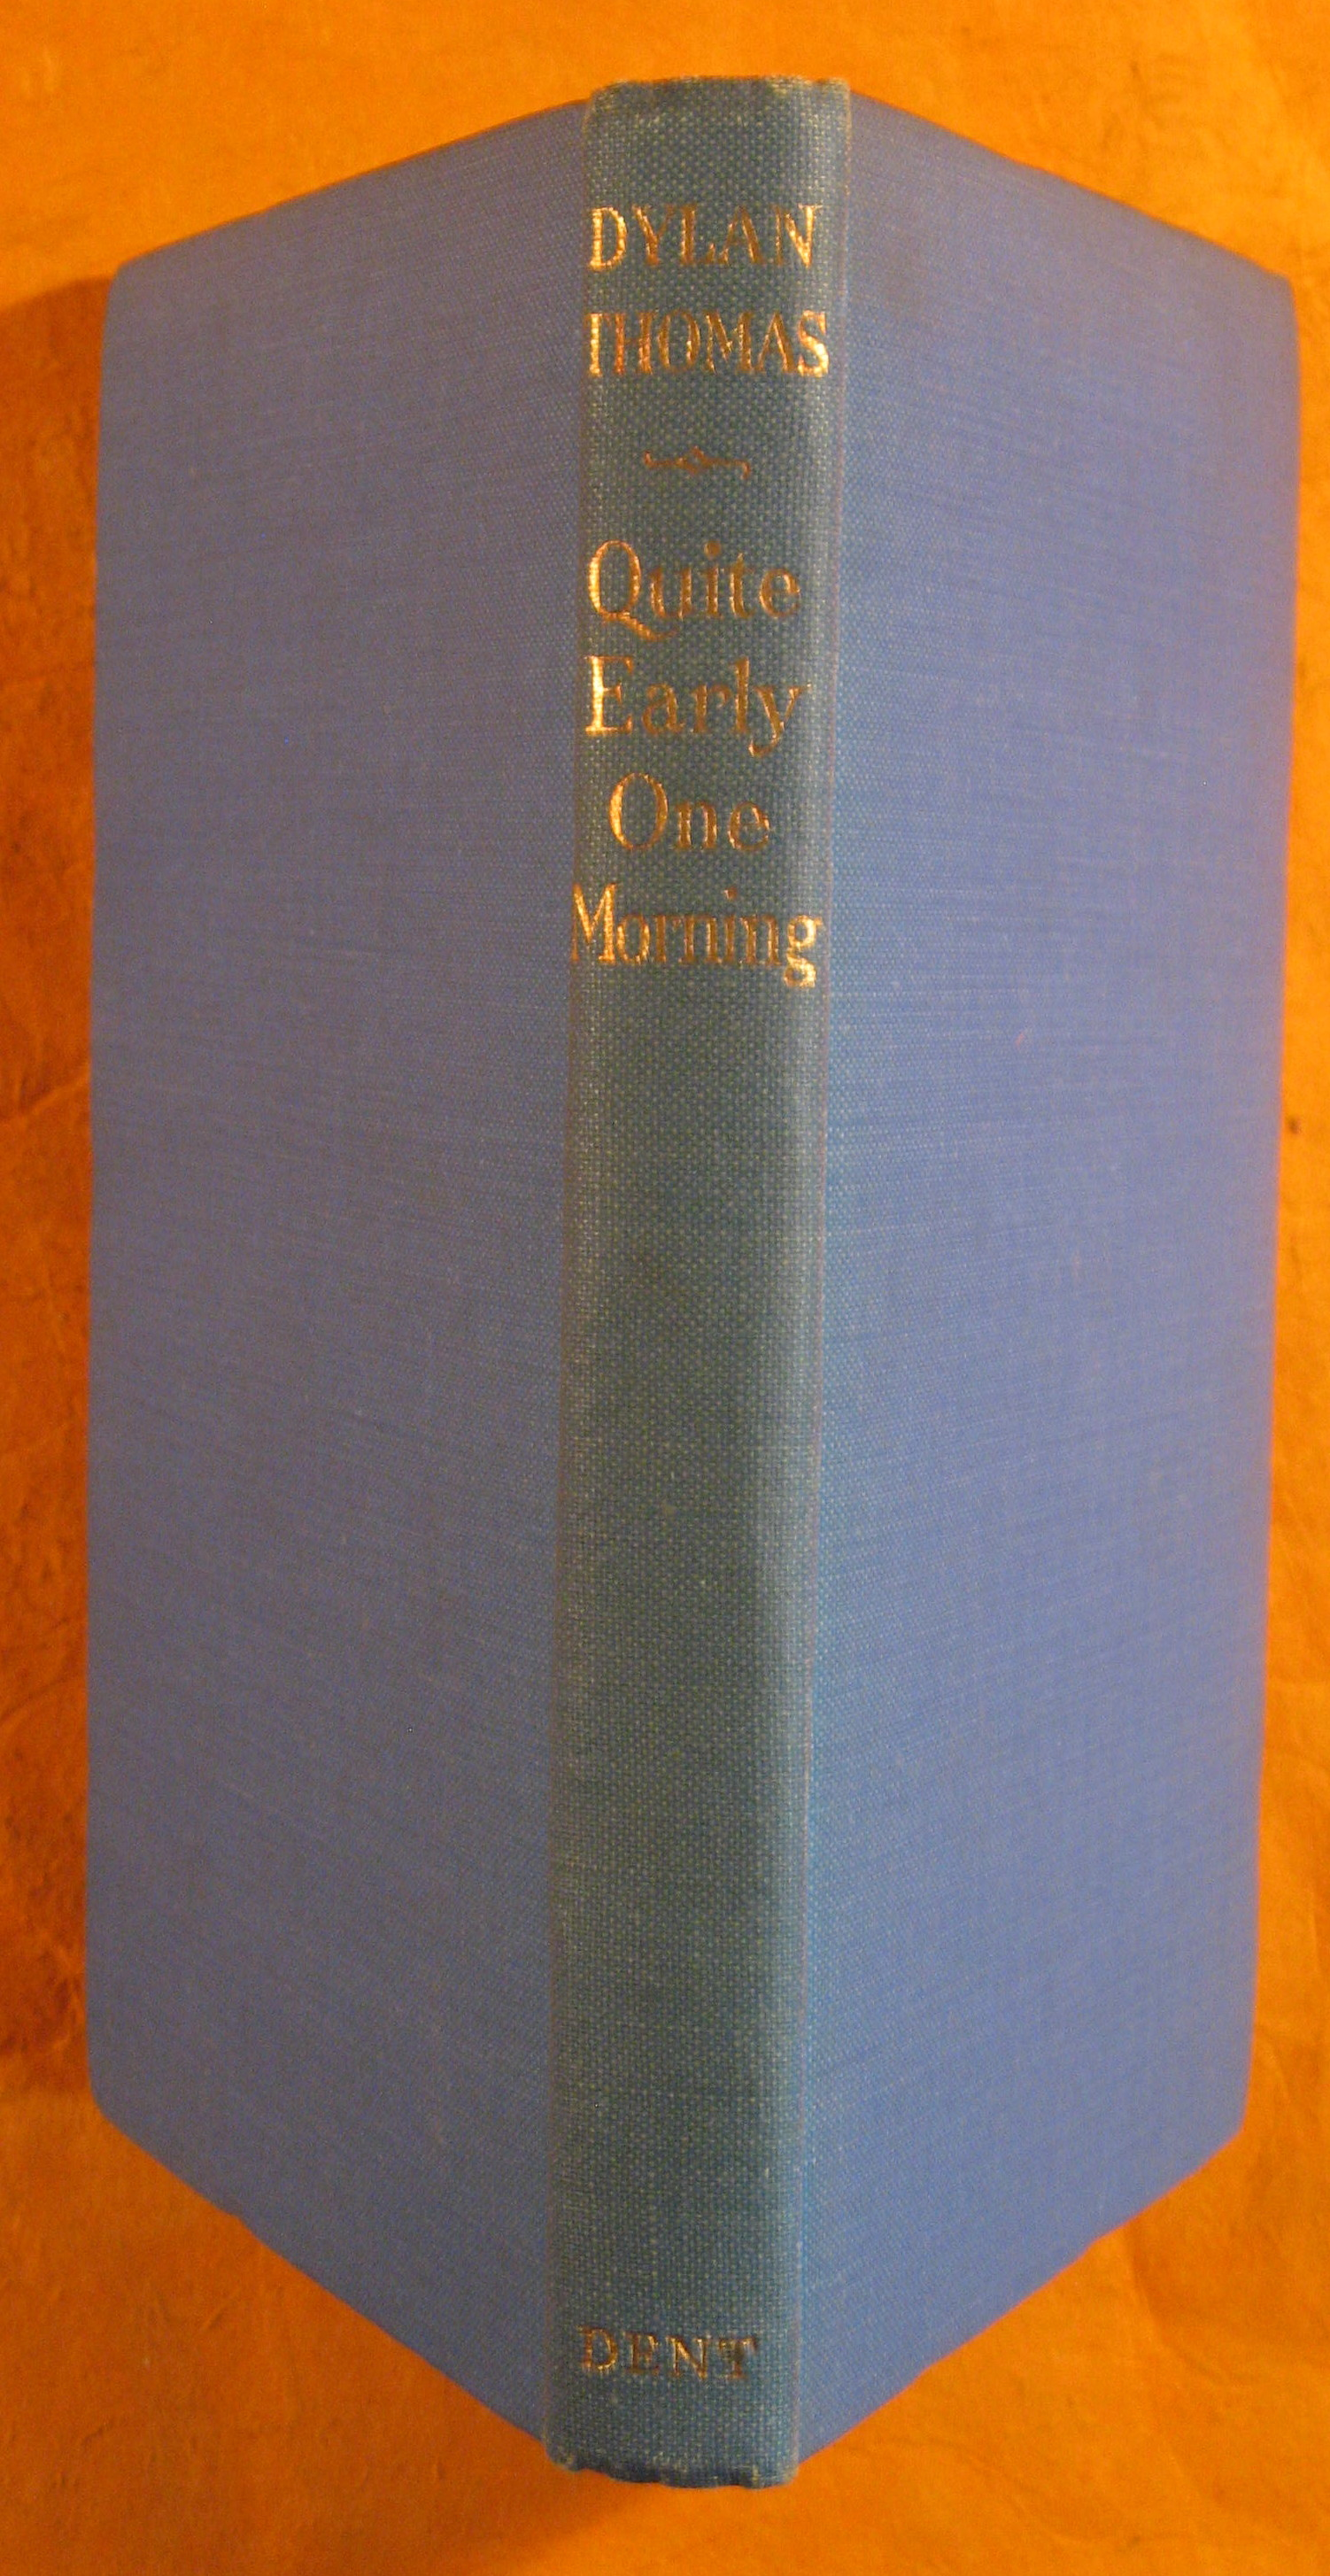 Image for Quite Early One Morning: Broadcasts By Dylan Thomas